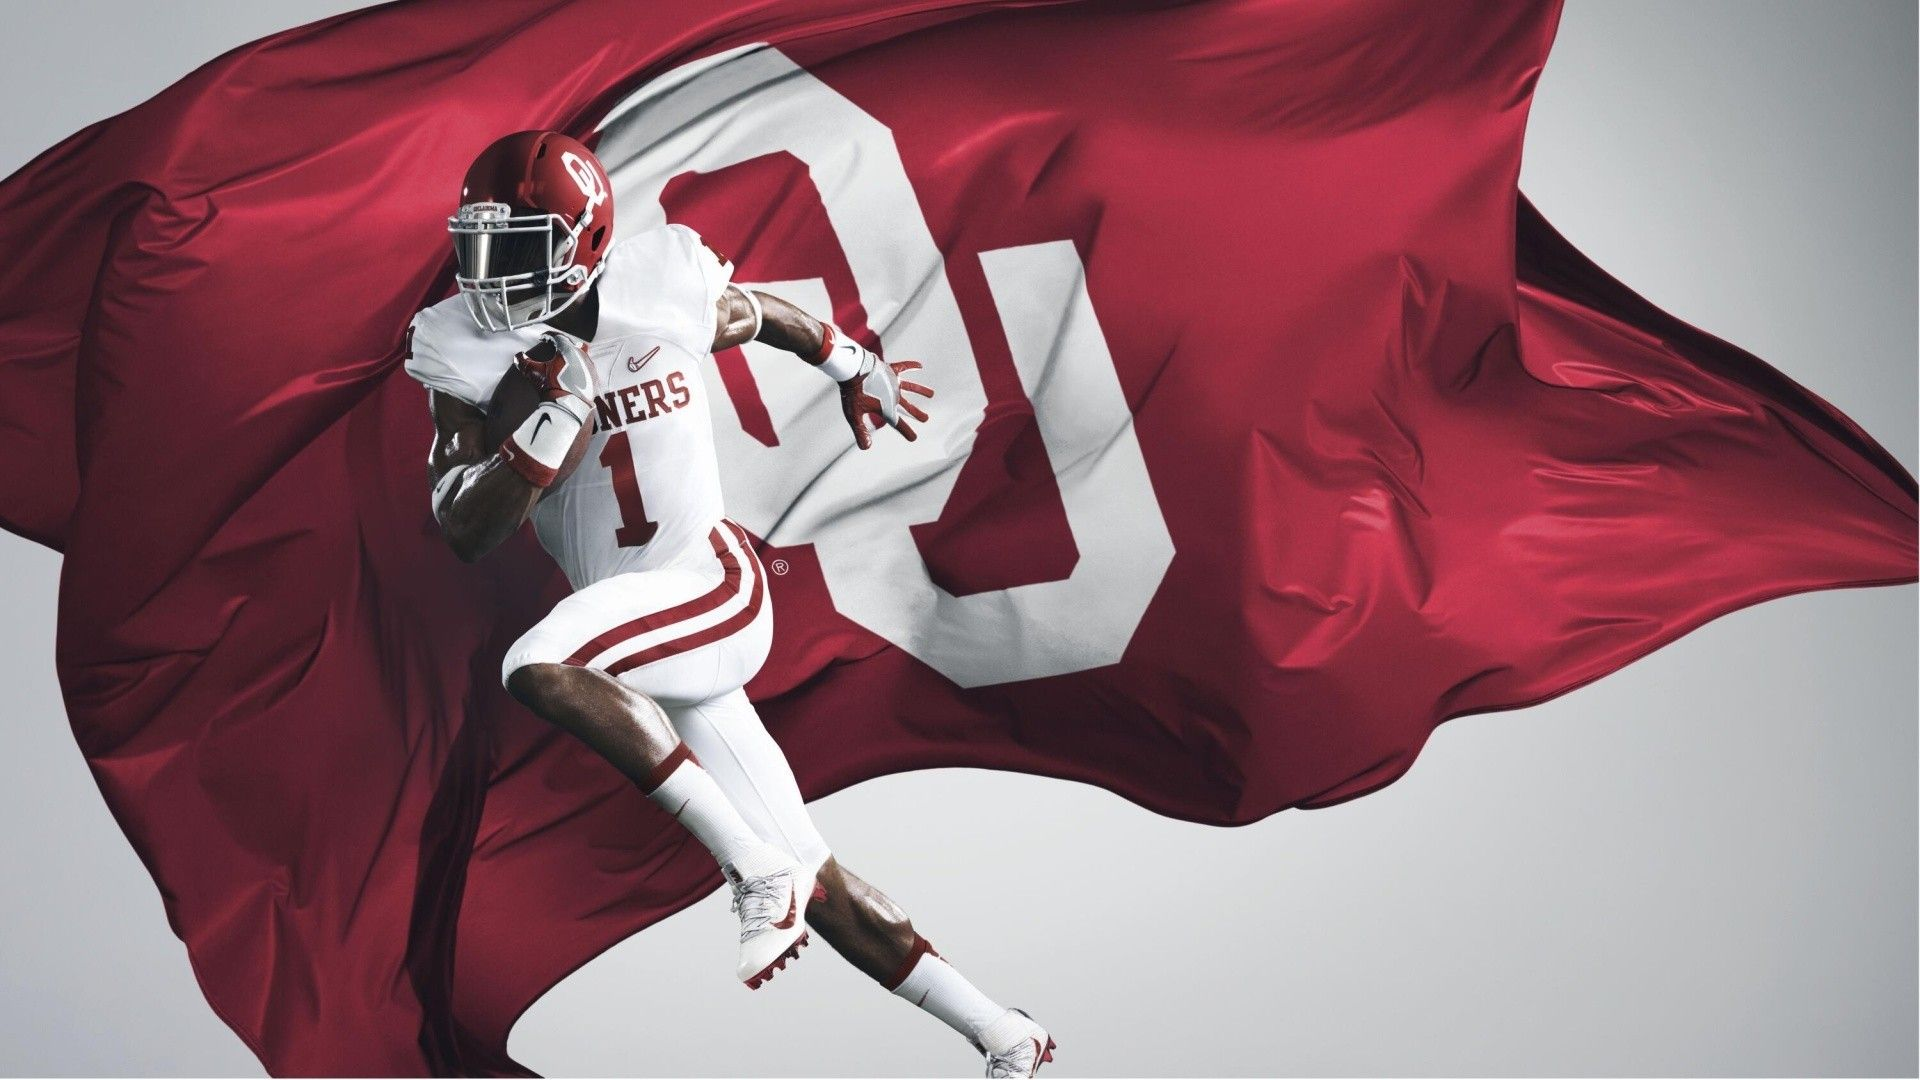 "2560x1600 OUnation.com | University of Oklahoma Themed Wallpapers Free for ..."">"